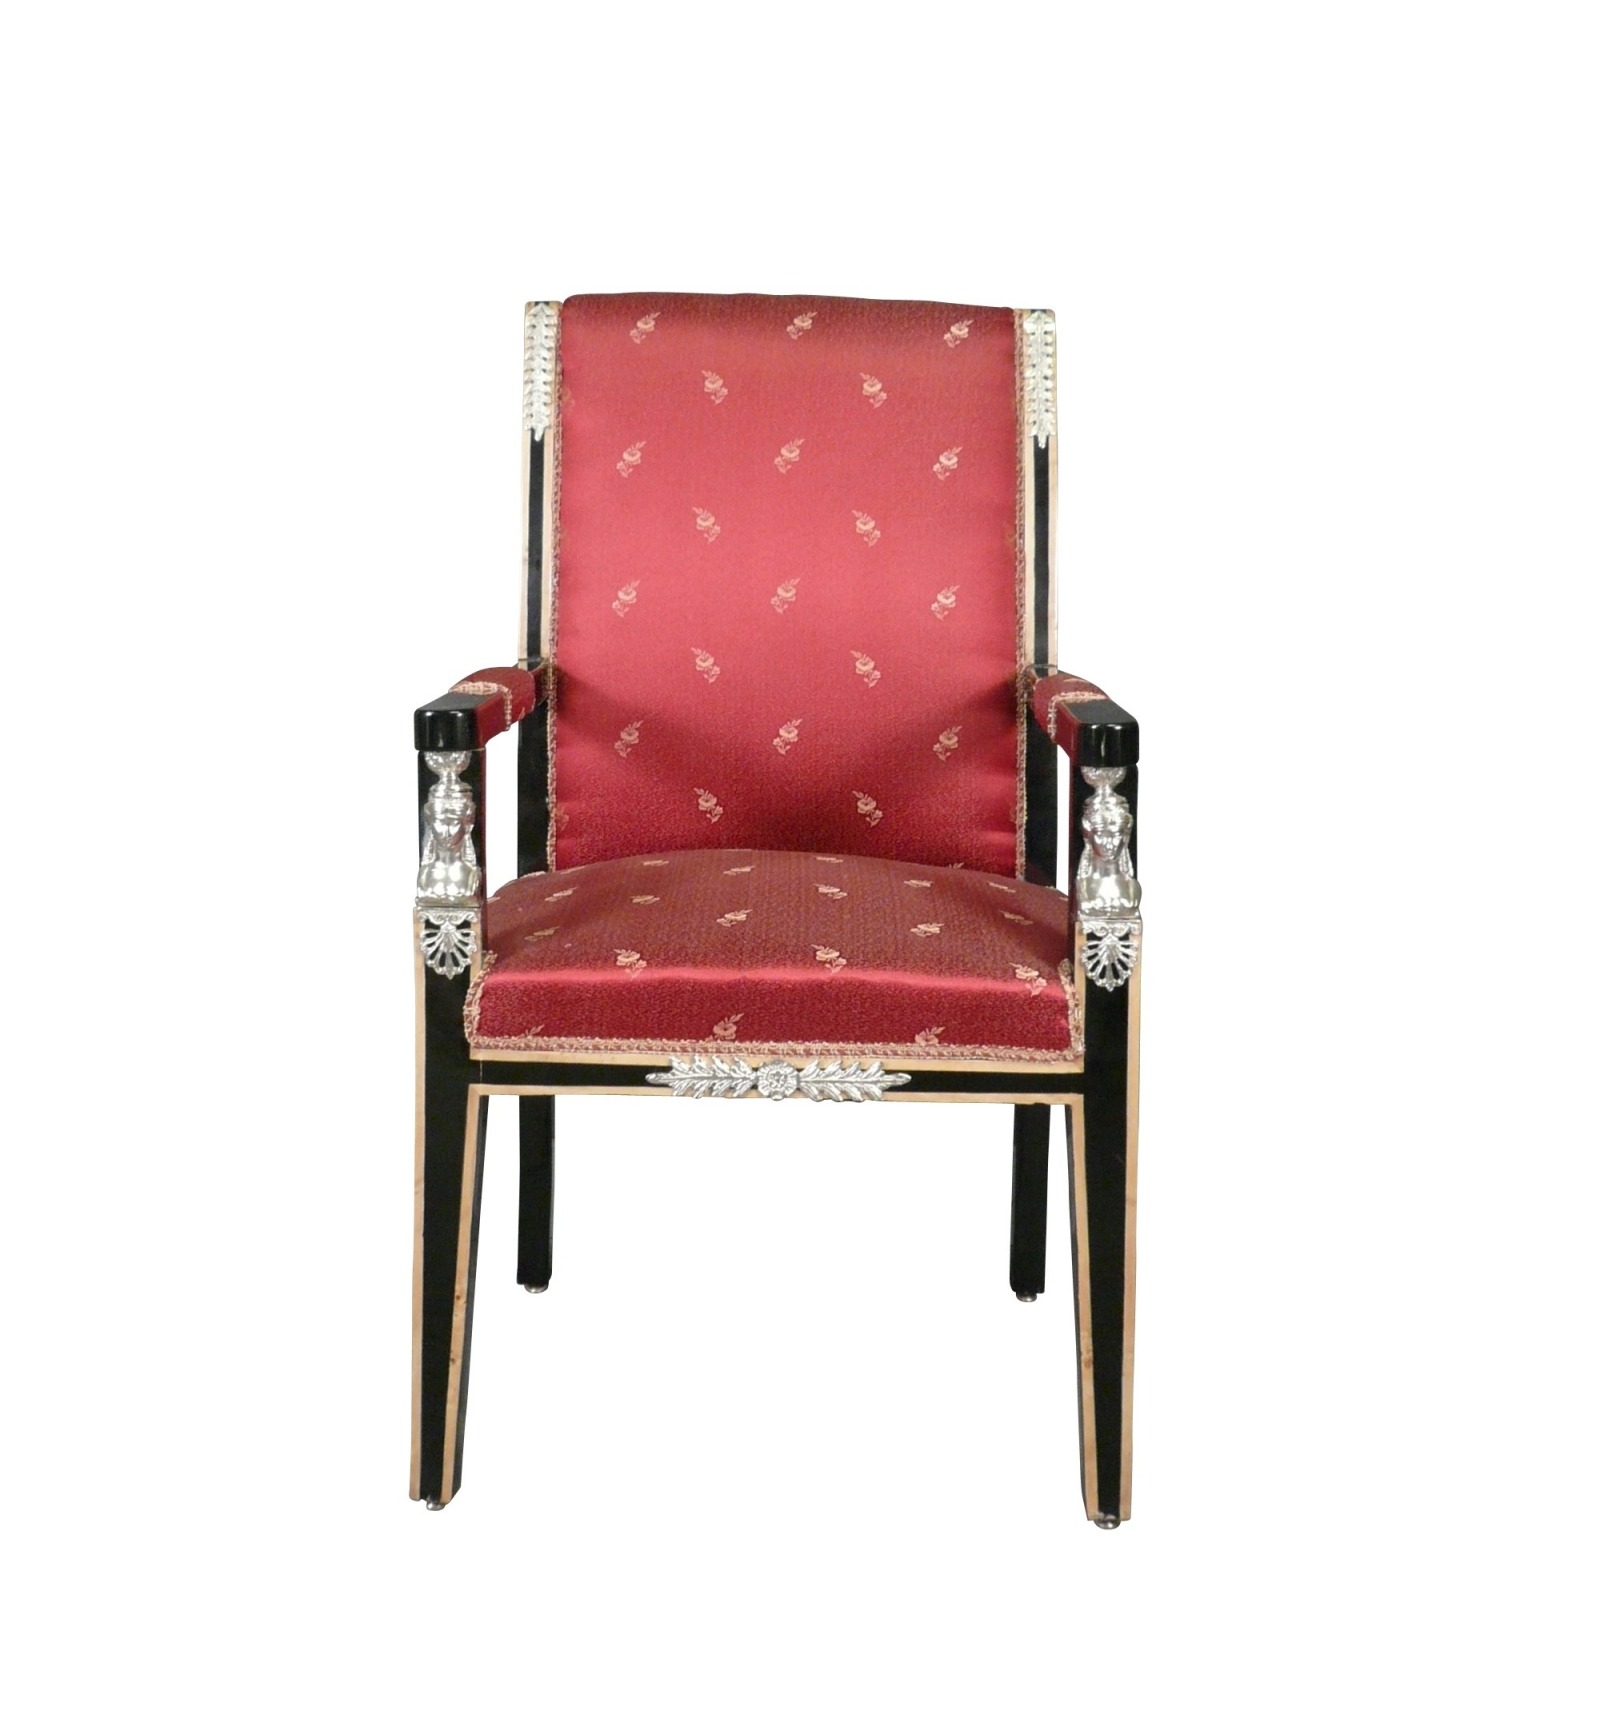 Fauteuils Tiffany Fauteuil Empire Rouge Mobilier Style Empire